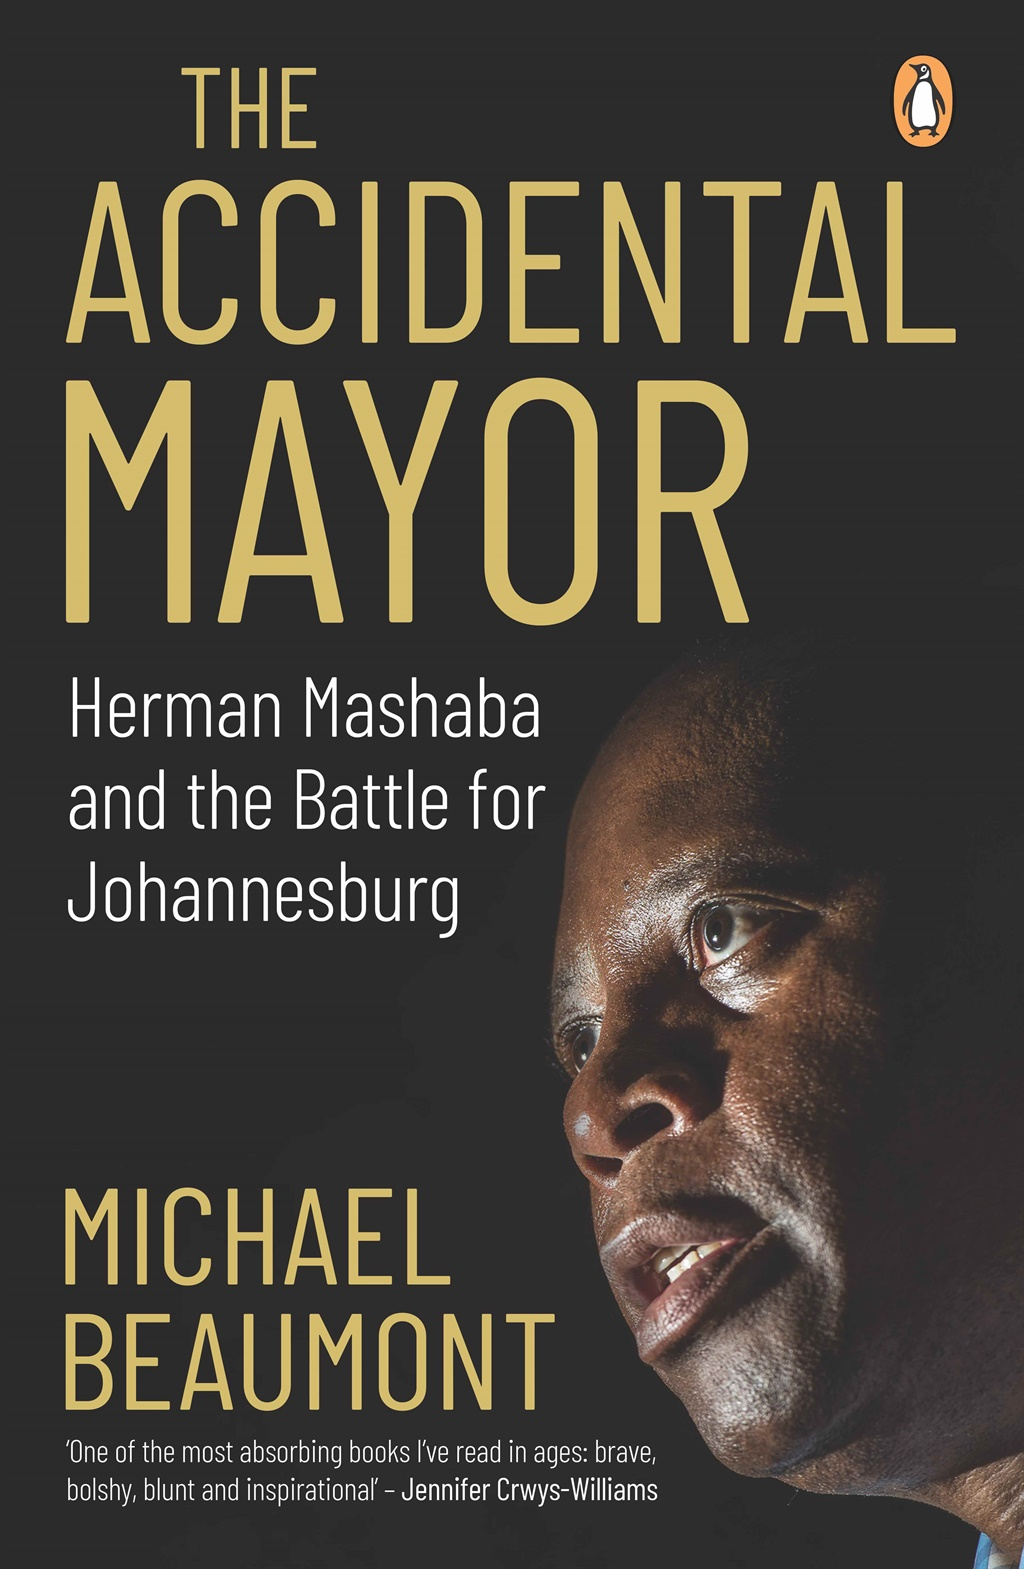 The Accidental Mayor: Herman Mashaba and the Battle for Johannesburg by Michael Beaumont is published by Penguin Random House South Africa.